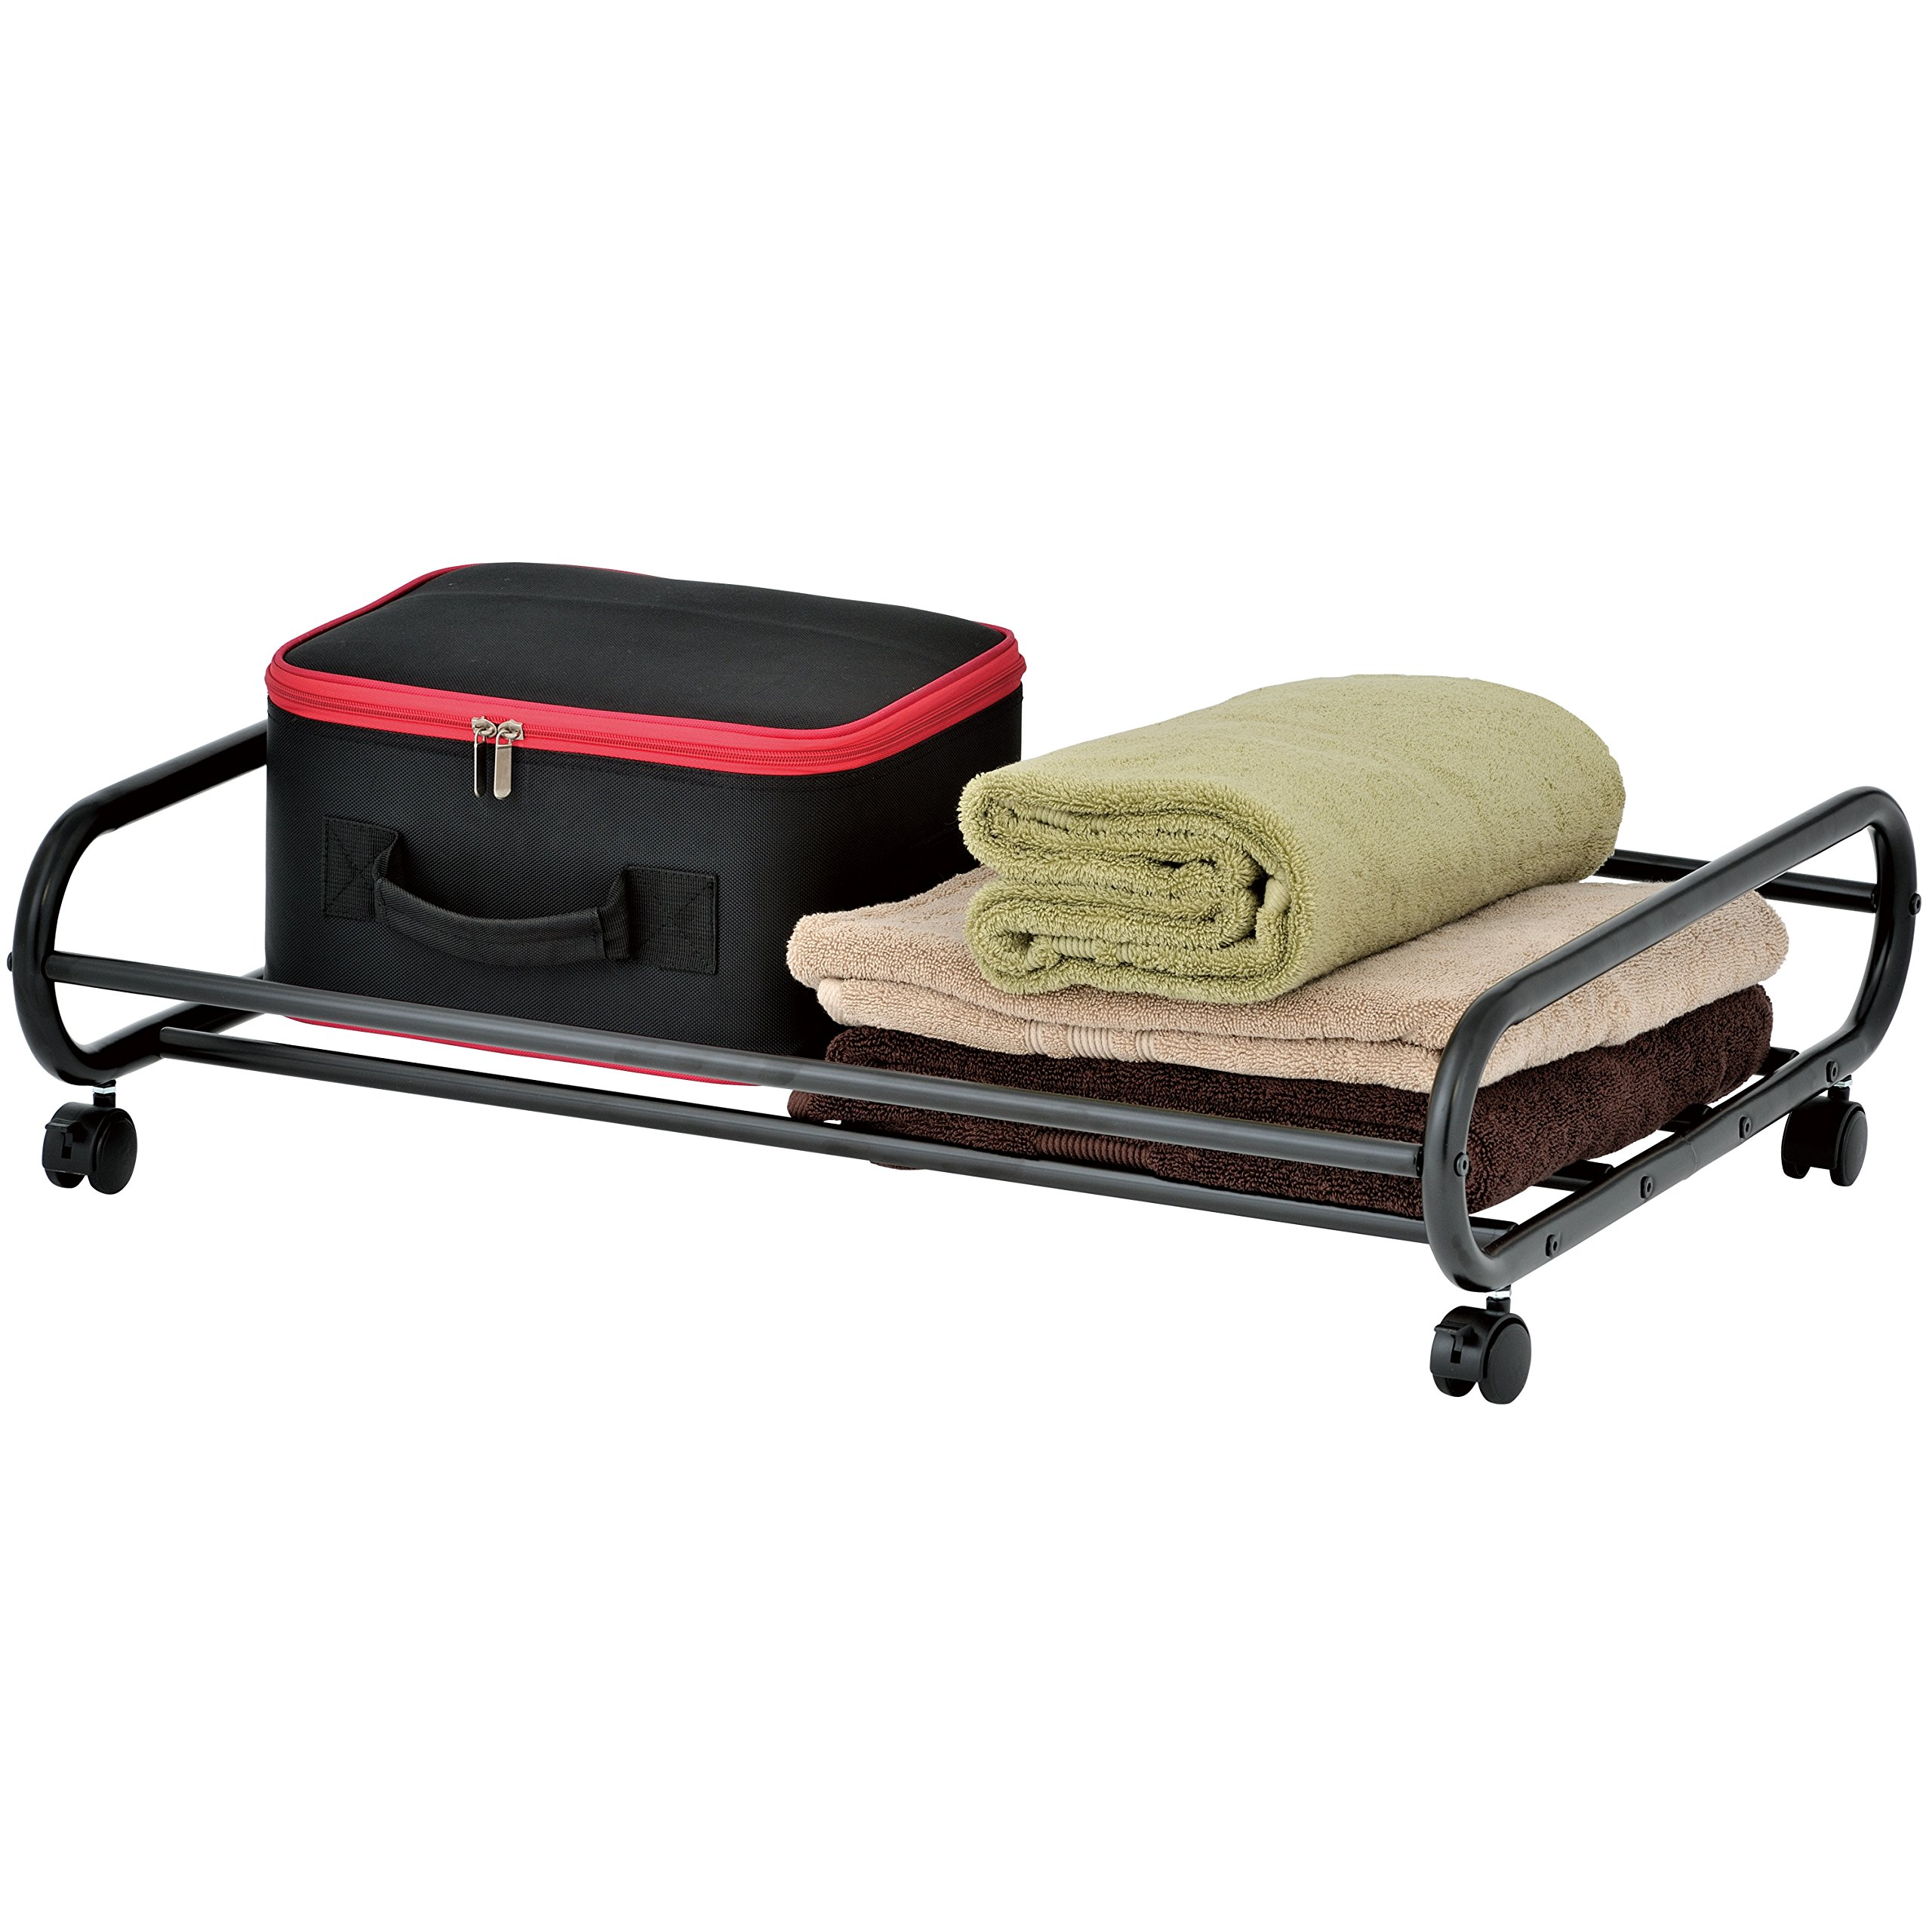 MyGift 24-Inch Rolling Metal Under-Bed Storage Cart with Rotating Wheels by MyGift